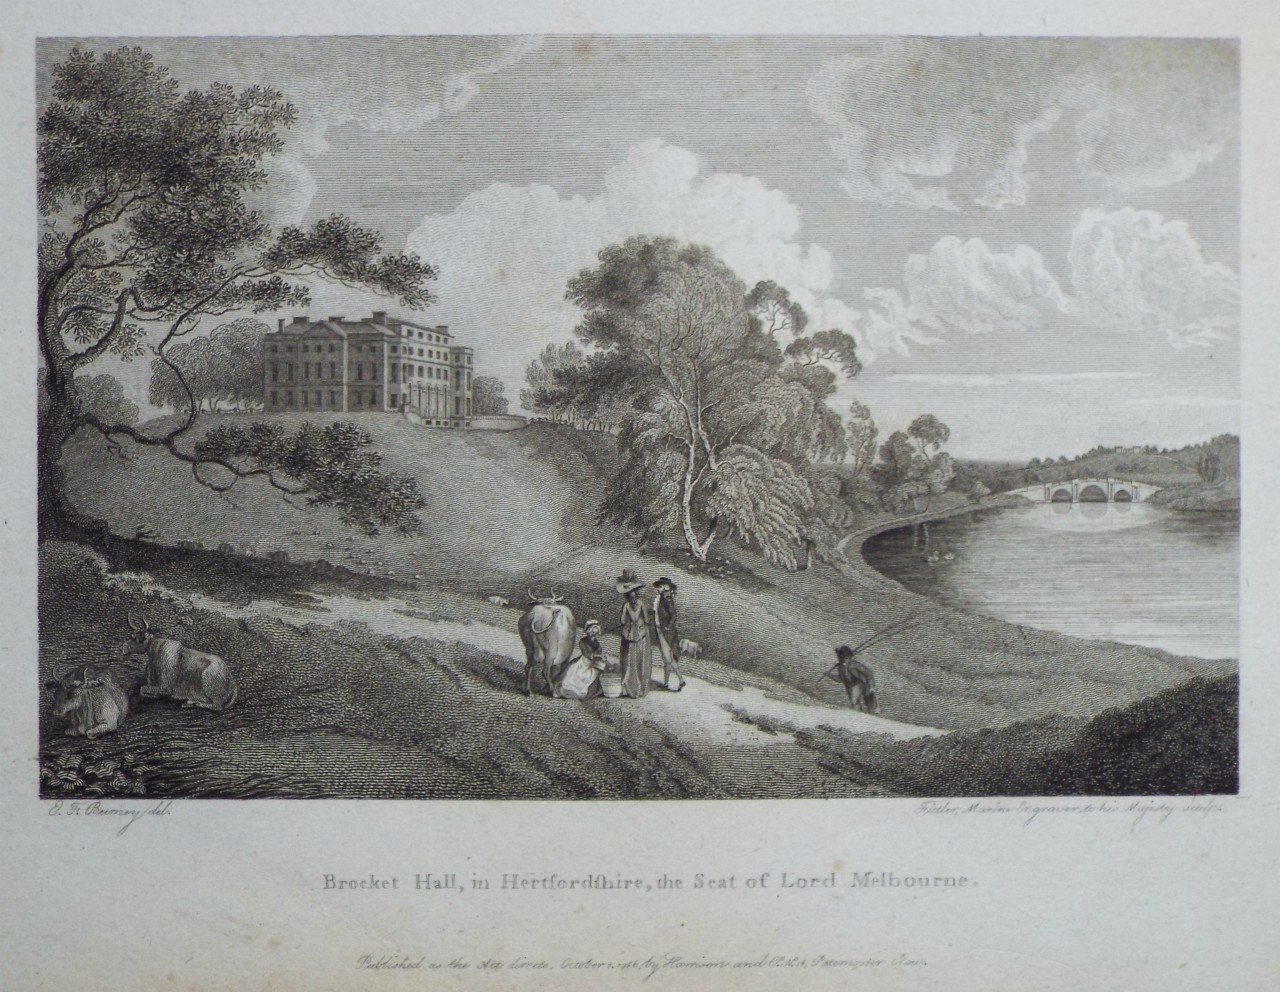 Print - Brocket Hall, in Hertfordshire, the Seat of Lord Melbourne. -